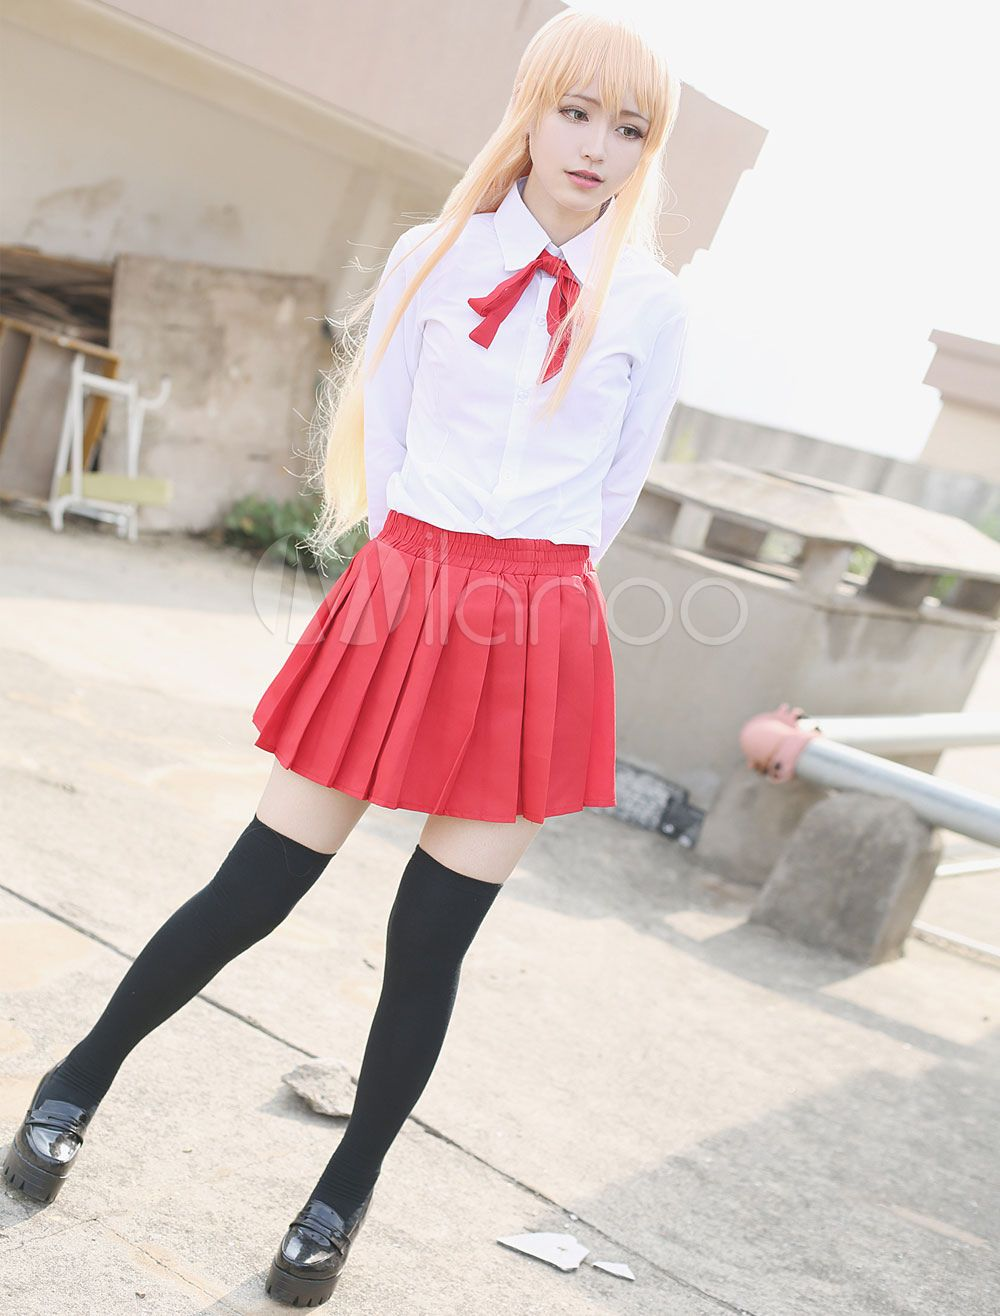 Umaru-chan Umaru Doma School Uniform Cosplay Costume Dress Any Size Himouto